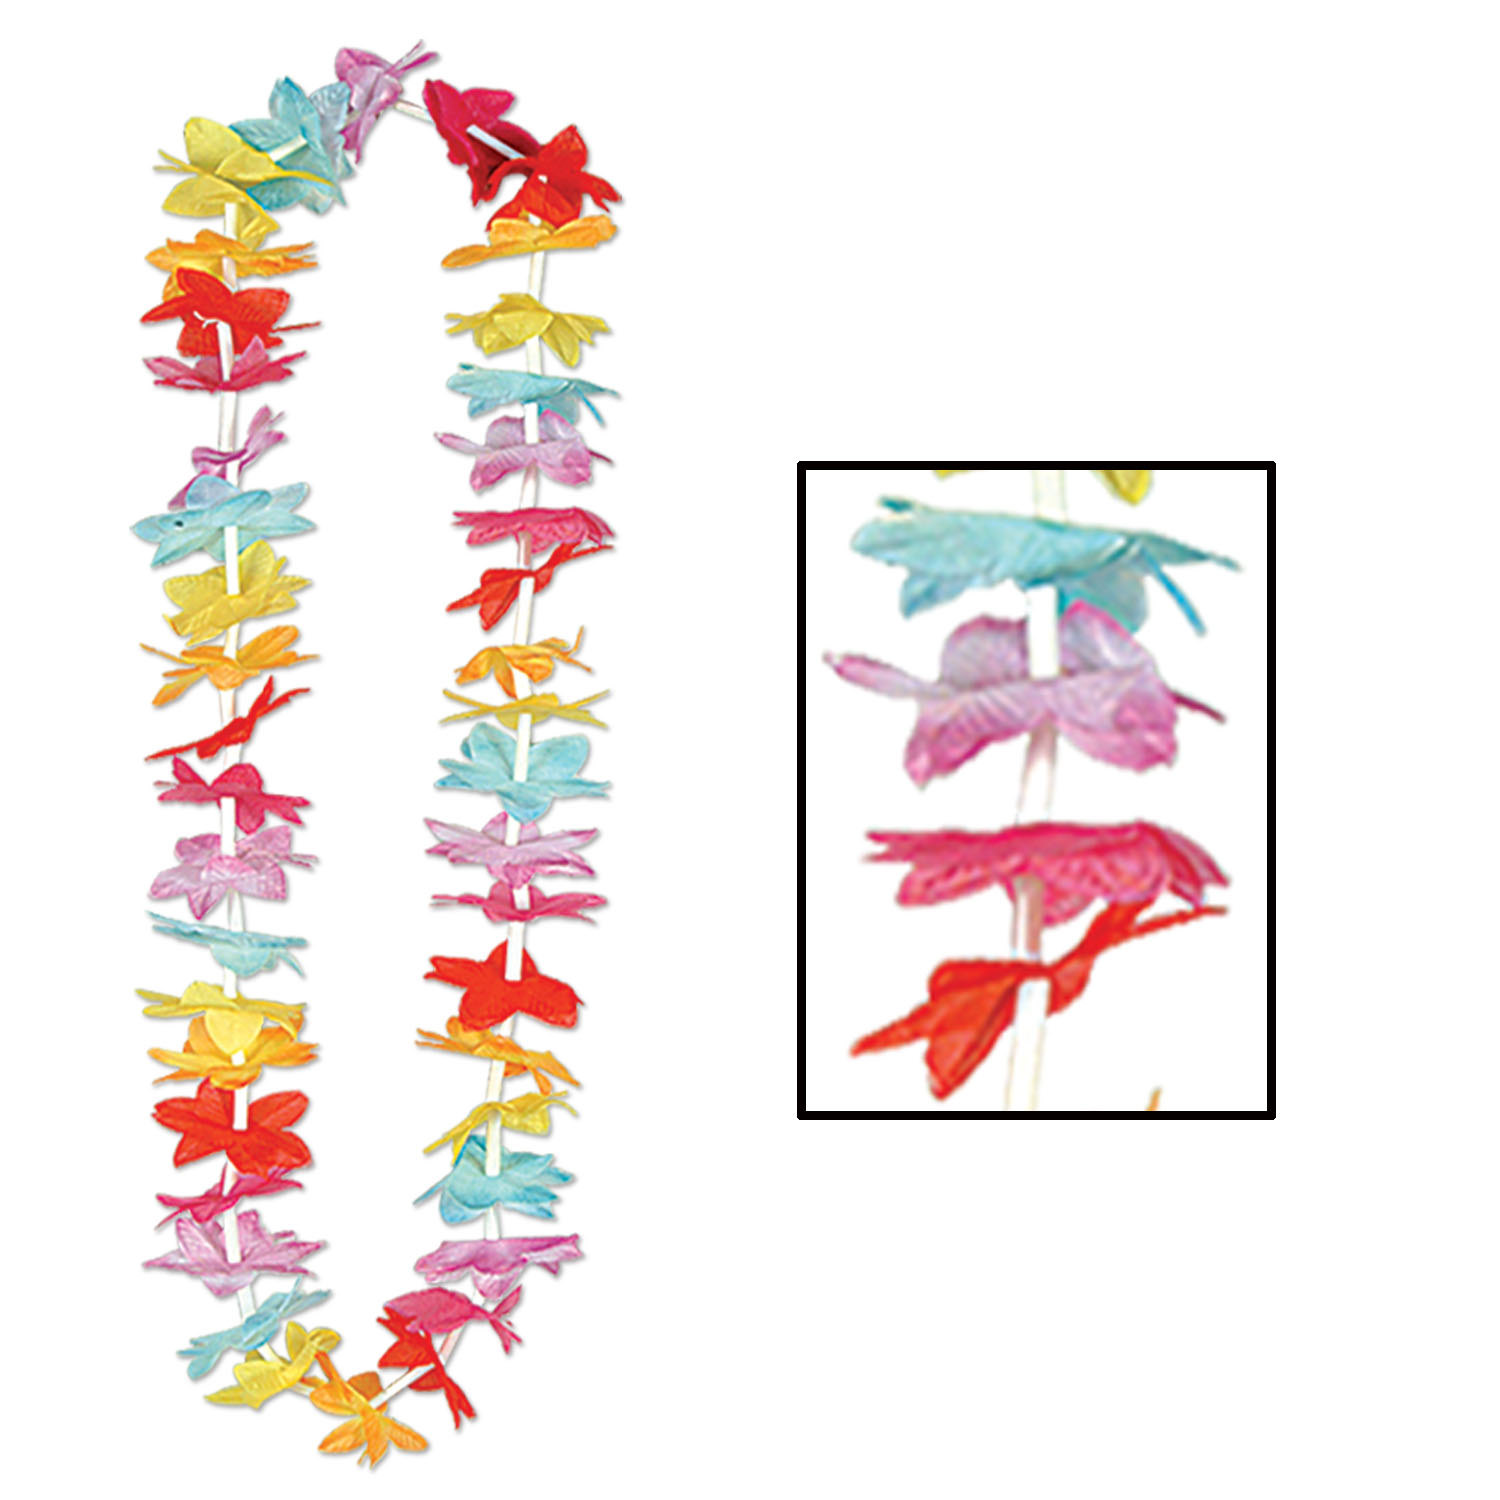 Floral Lei (Pack of 50) Leis, Floral Lei, Floral Petals, Multi-color, Cheap, Bulk, Luau, New Years Eve, Tropical Event, Caribbean, Island themed, Wholesale party supplies, Inexpensive party favors, Party Goods